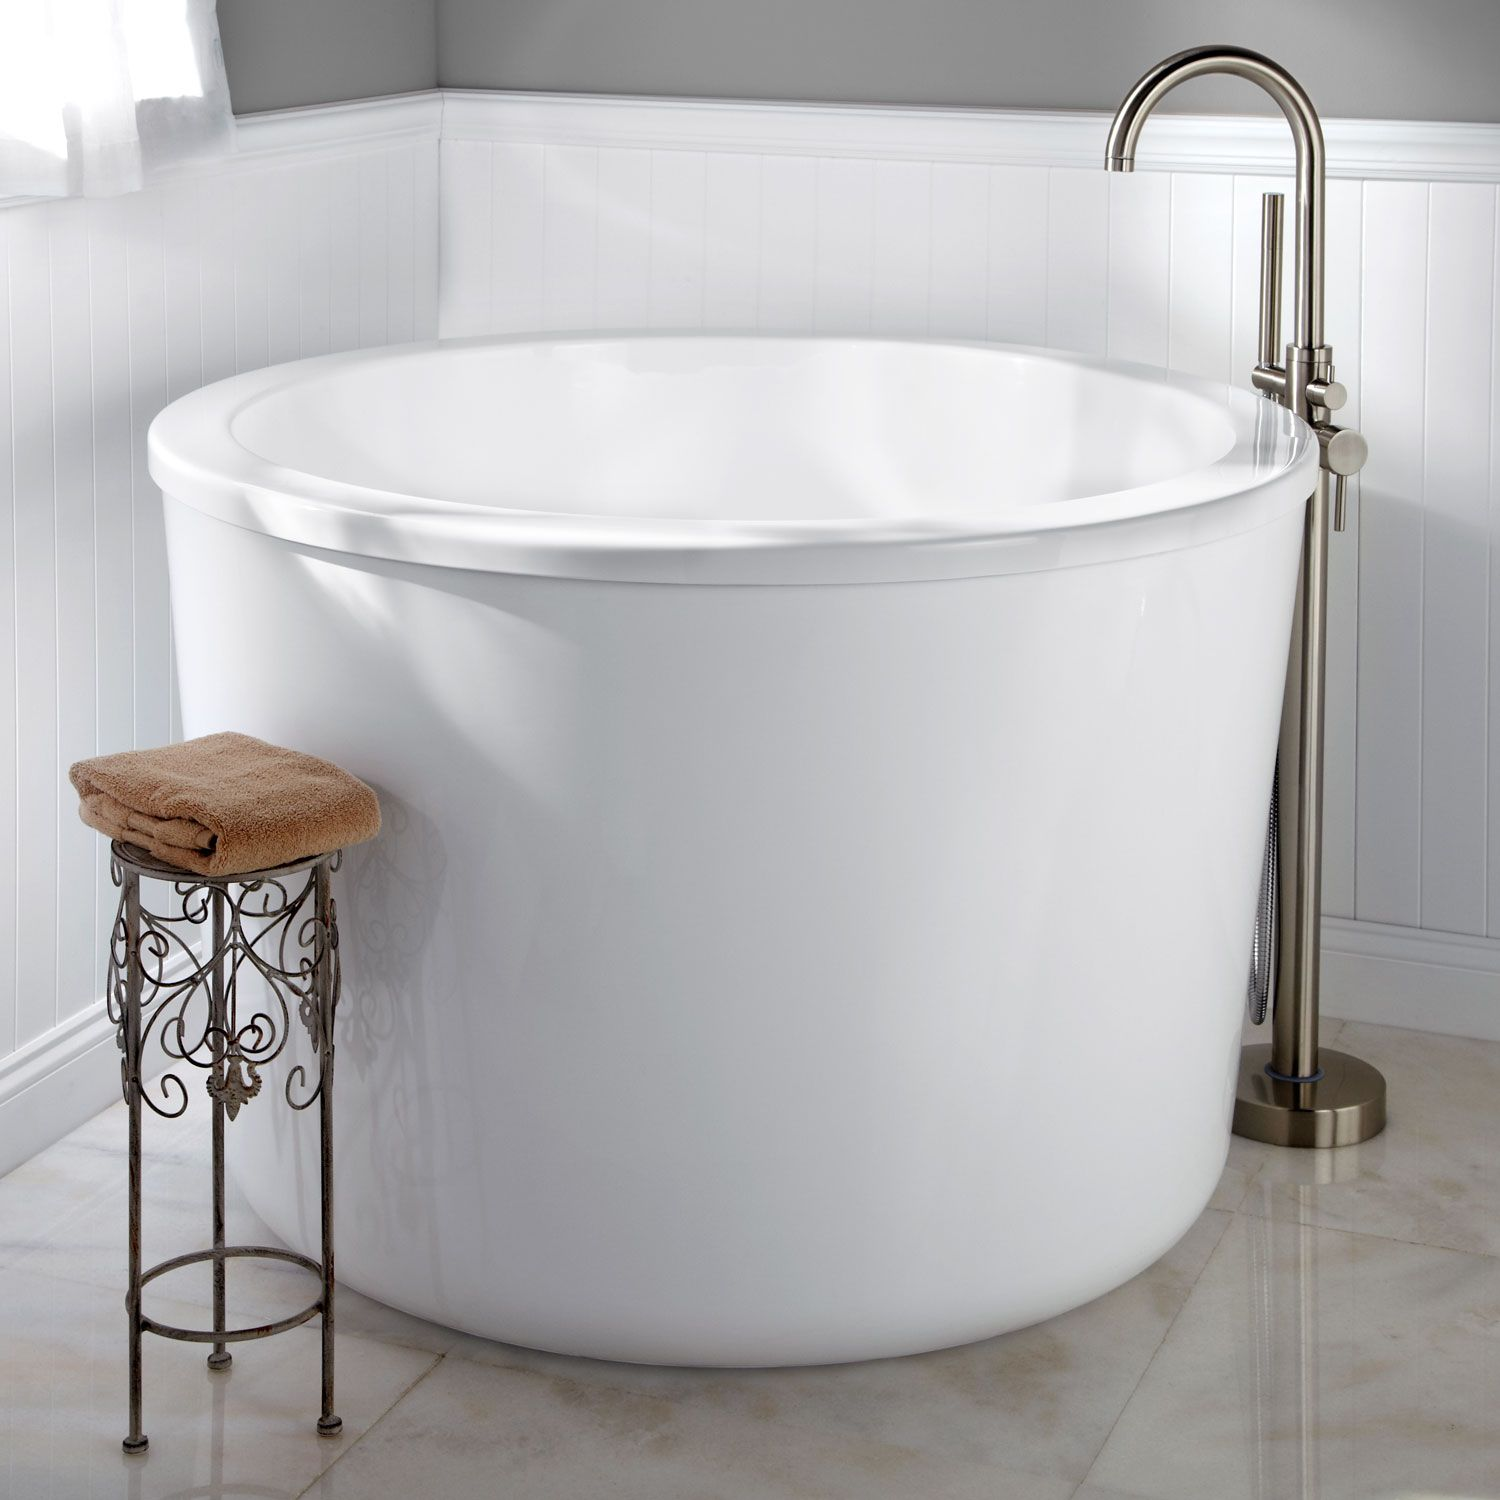 Remodeling With Japanese Soaking Tubs Small Soaking Tub Japanese Soaking Tubs Small Soaker Tub